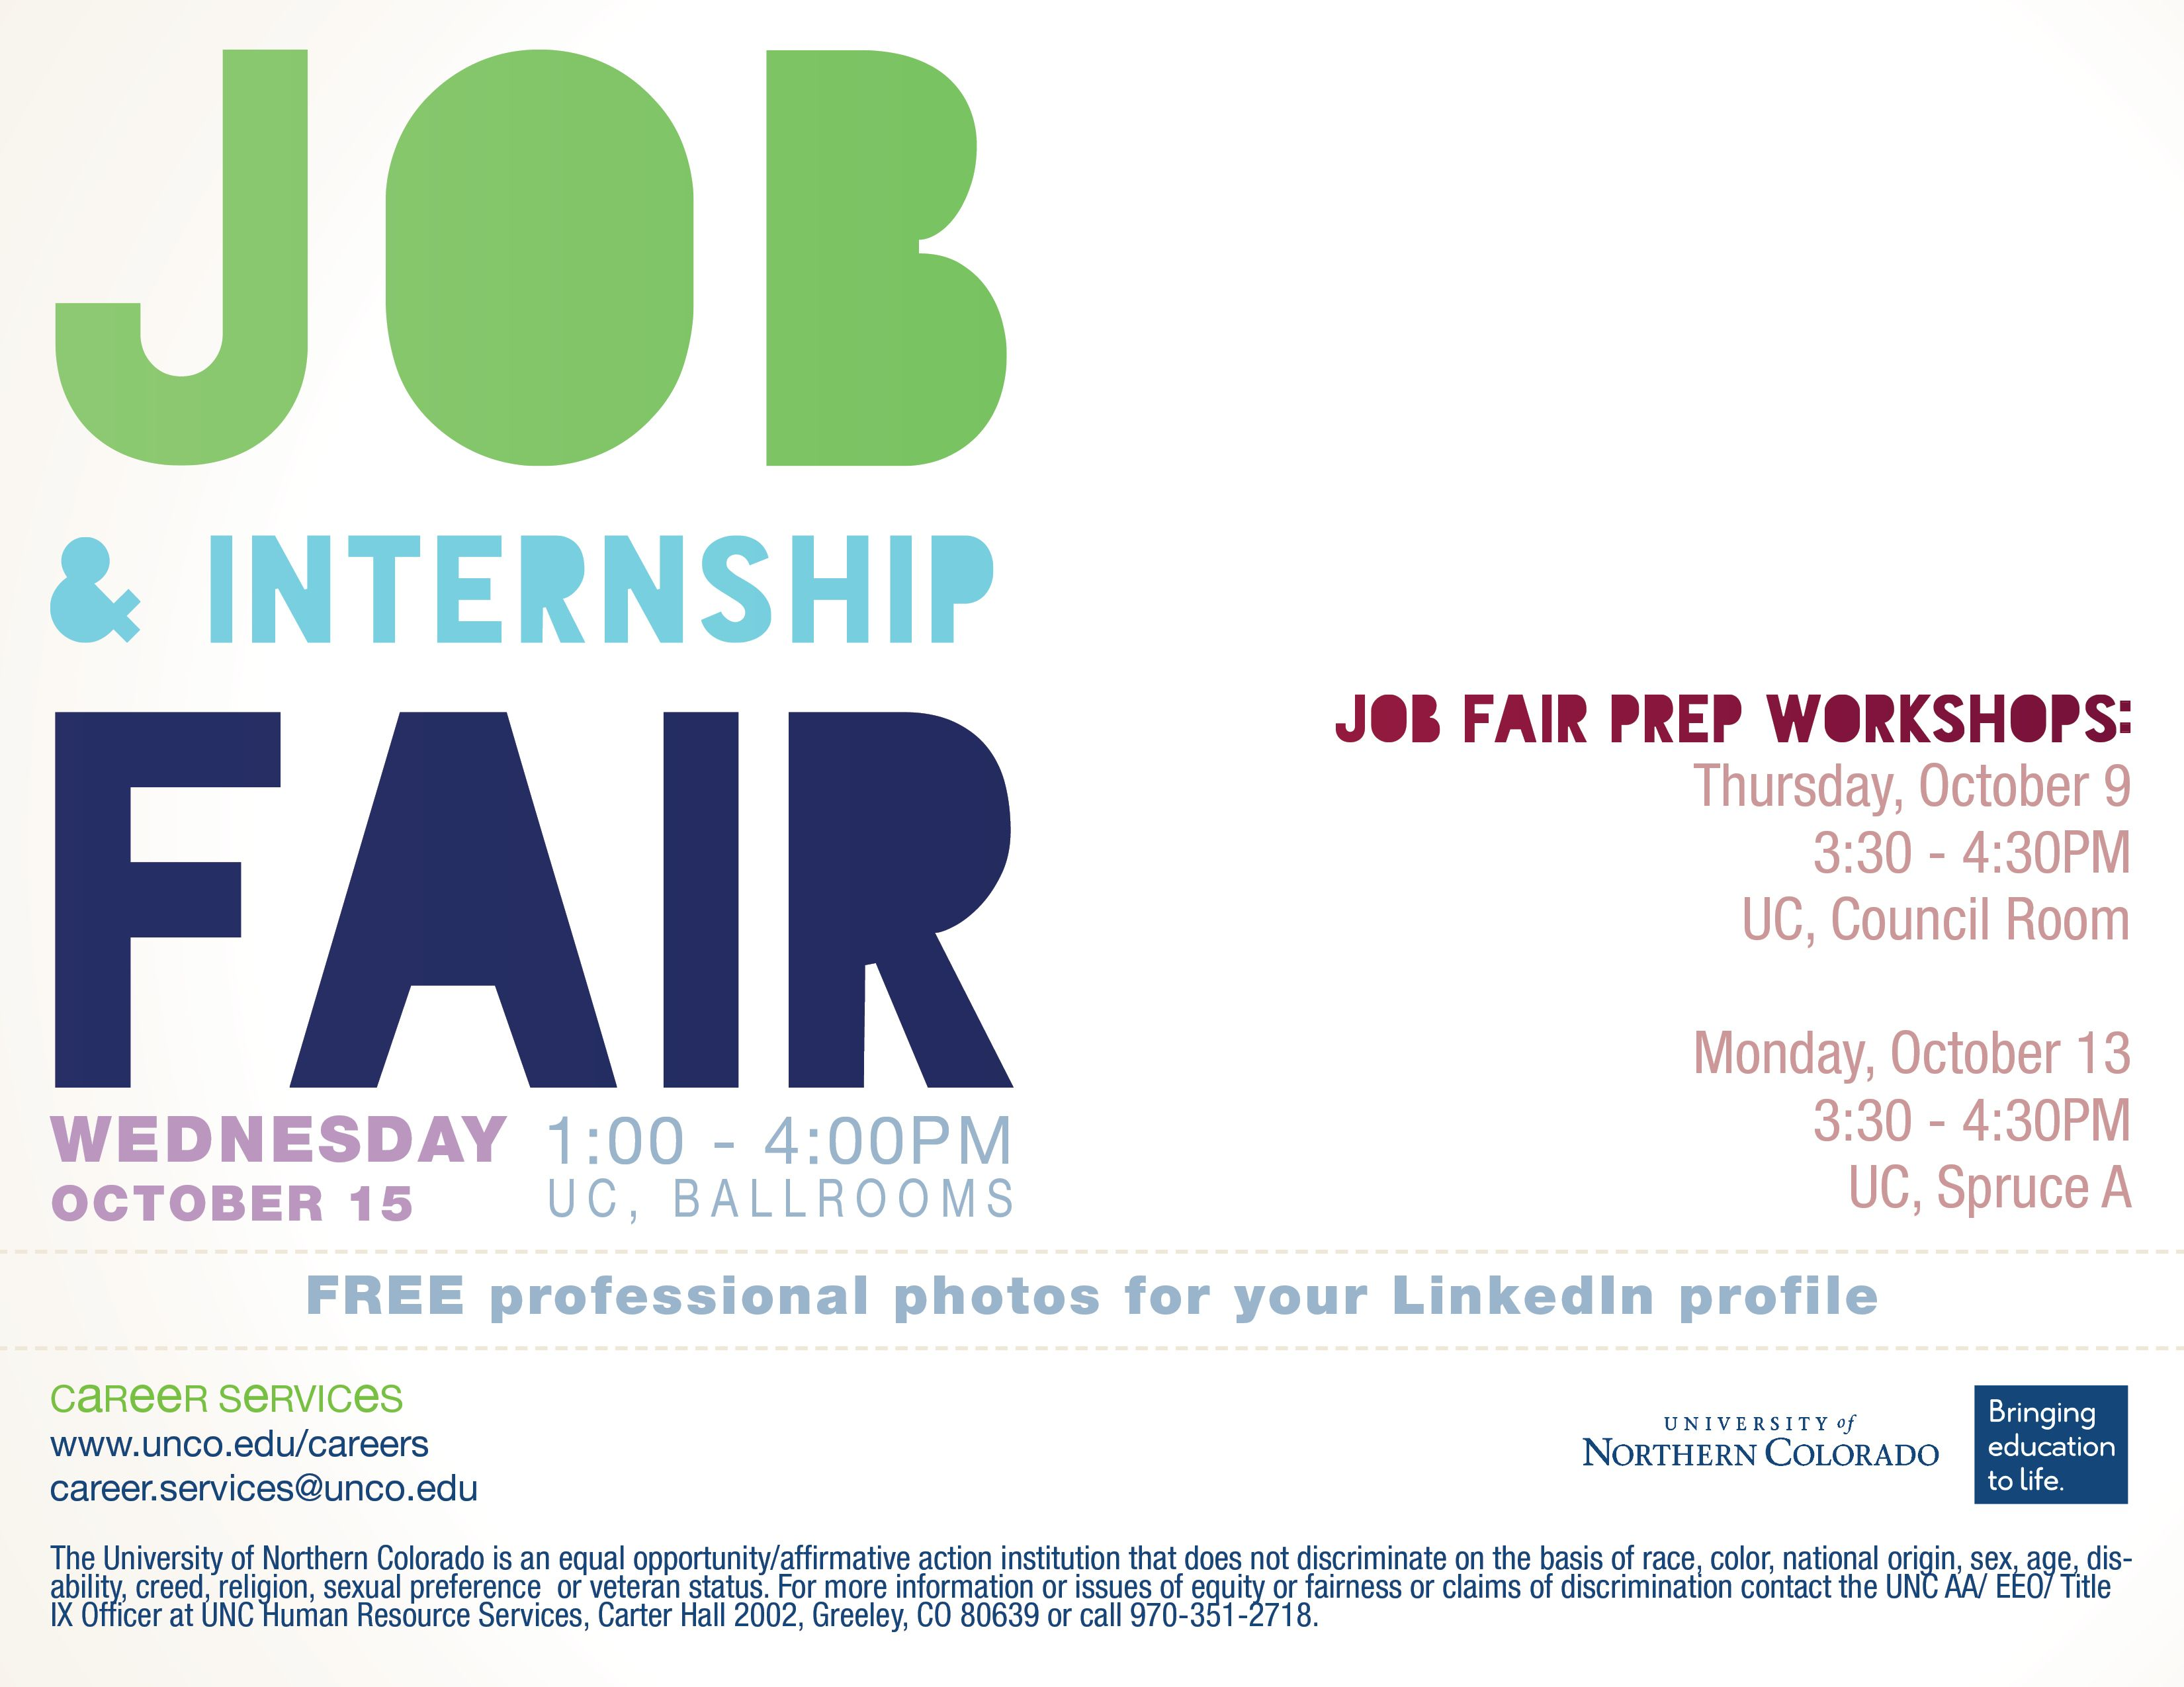 Meet Employers Find That Job Or Internship Free To Attend Come